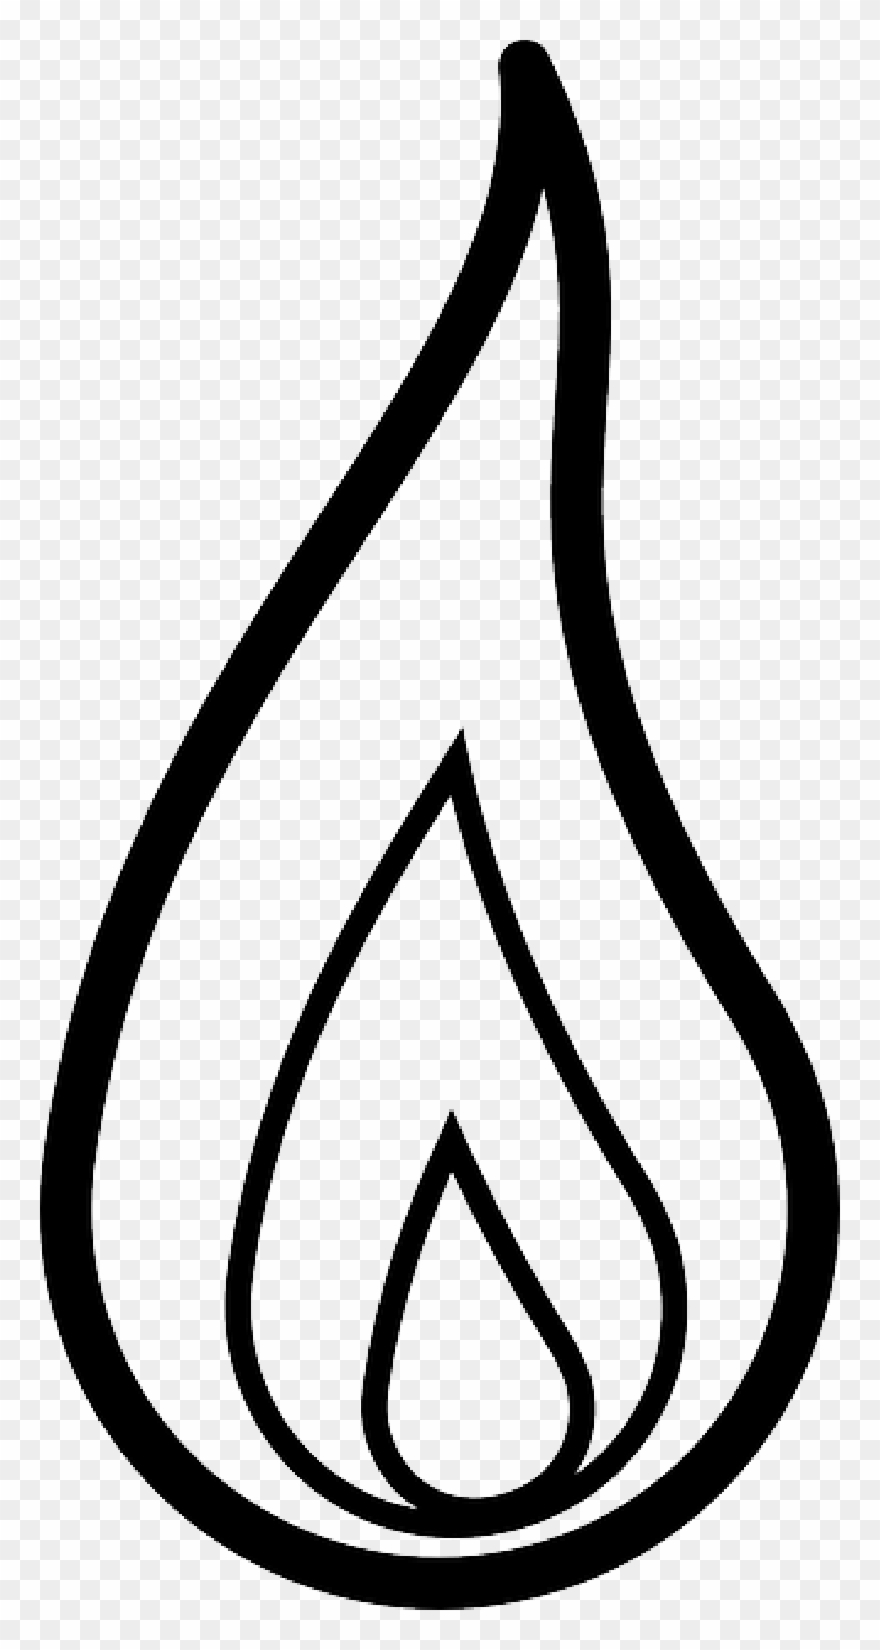 Flame outline. Drawn candle clipart png